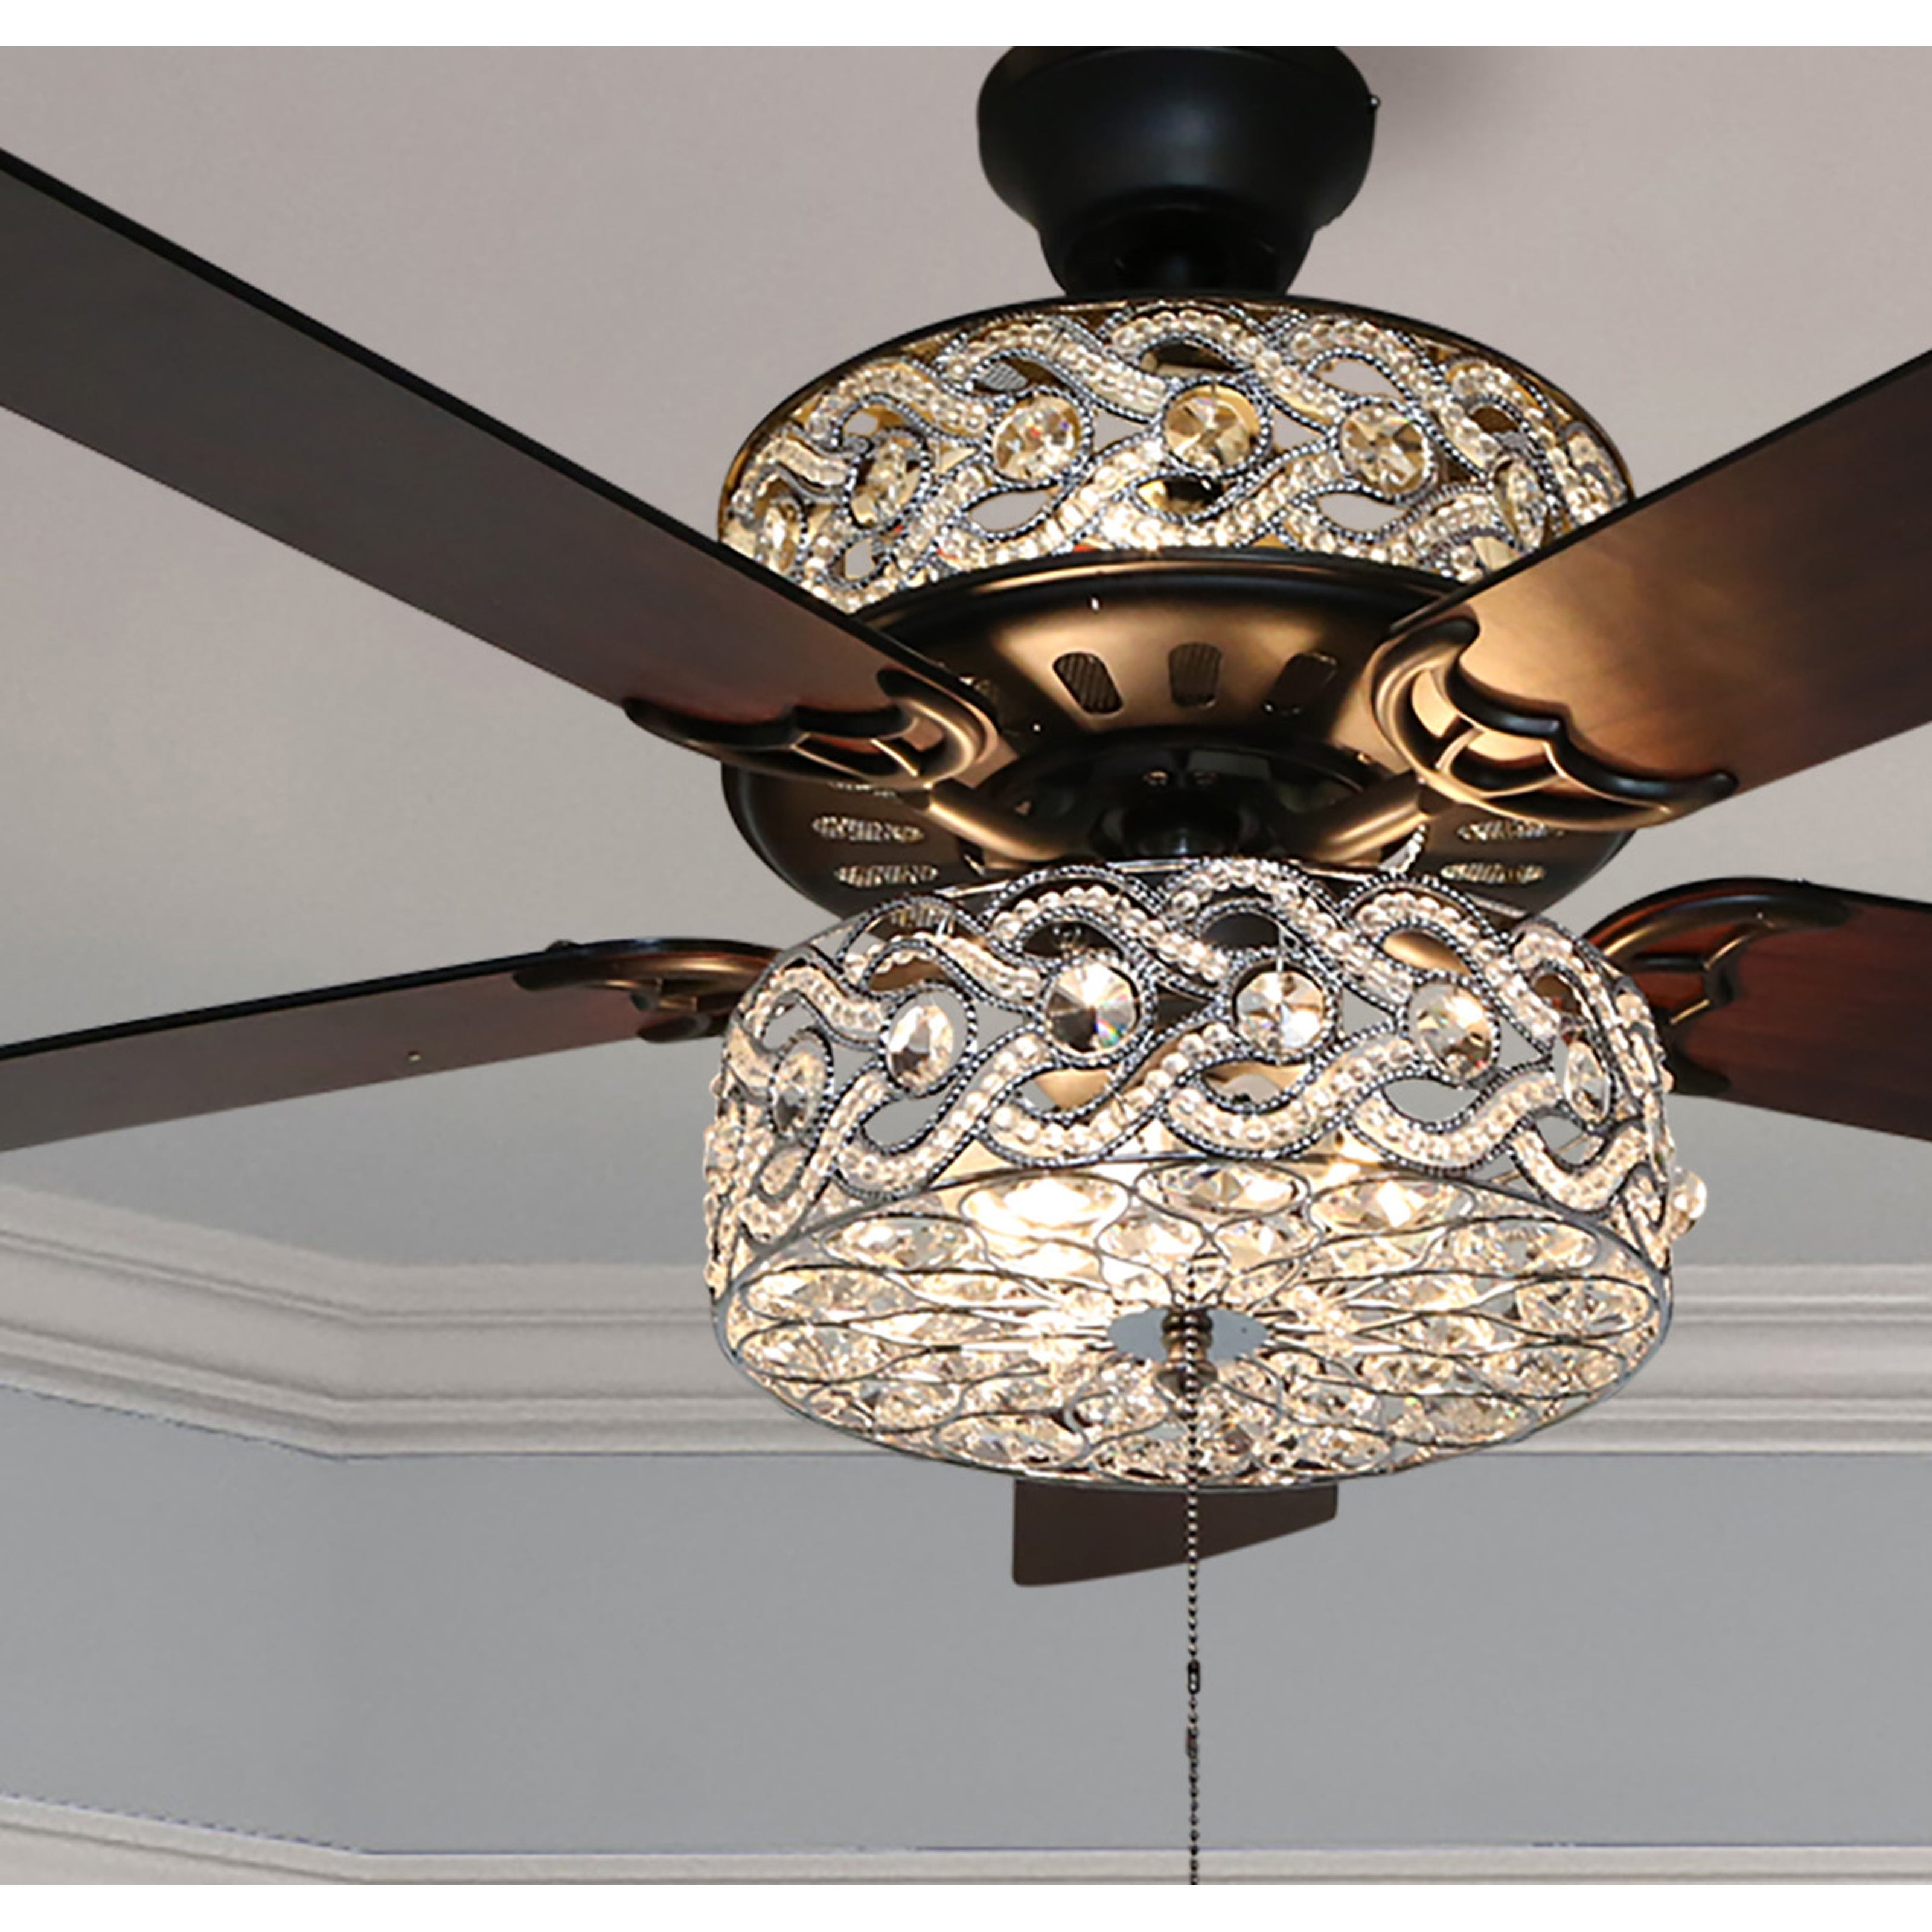 Image of: Shop Black Friday Deals On Olivia Oil Rubbed Bronze Finish Crystal 52 Inch Led Ceiling Fan 52 L X 52 W X 18 25 H 52 L X 52 W X 18 25 H On Sale Overstock